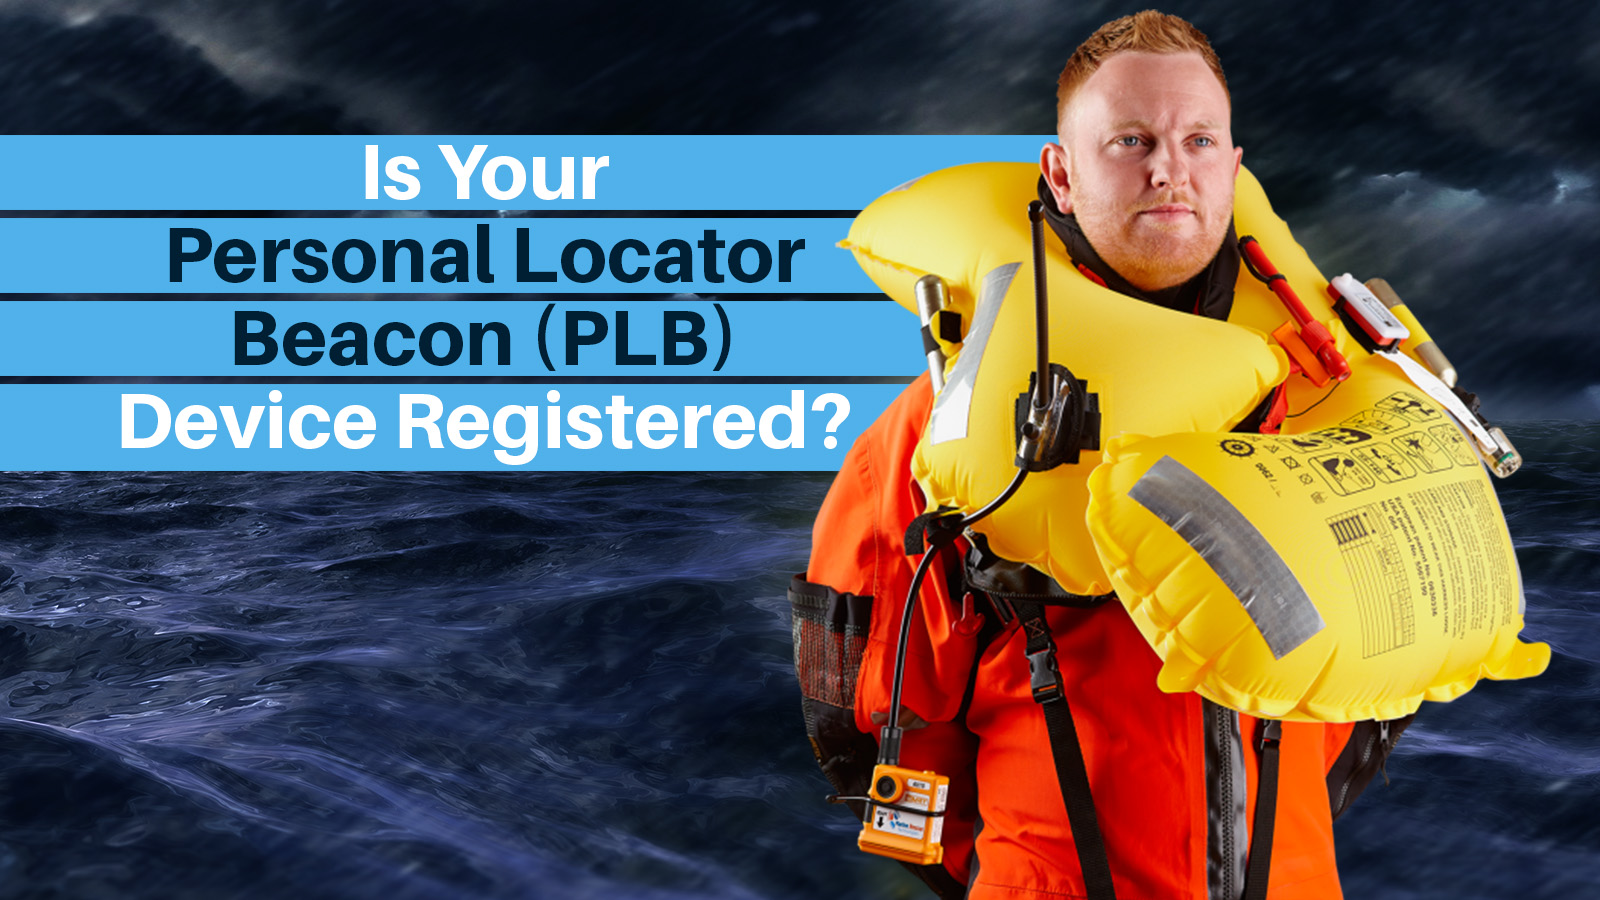 Is your PLB Device Registered?